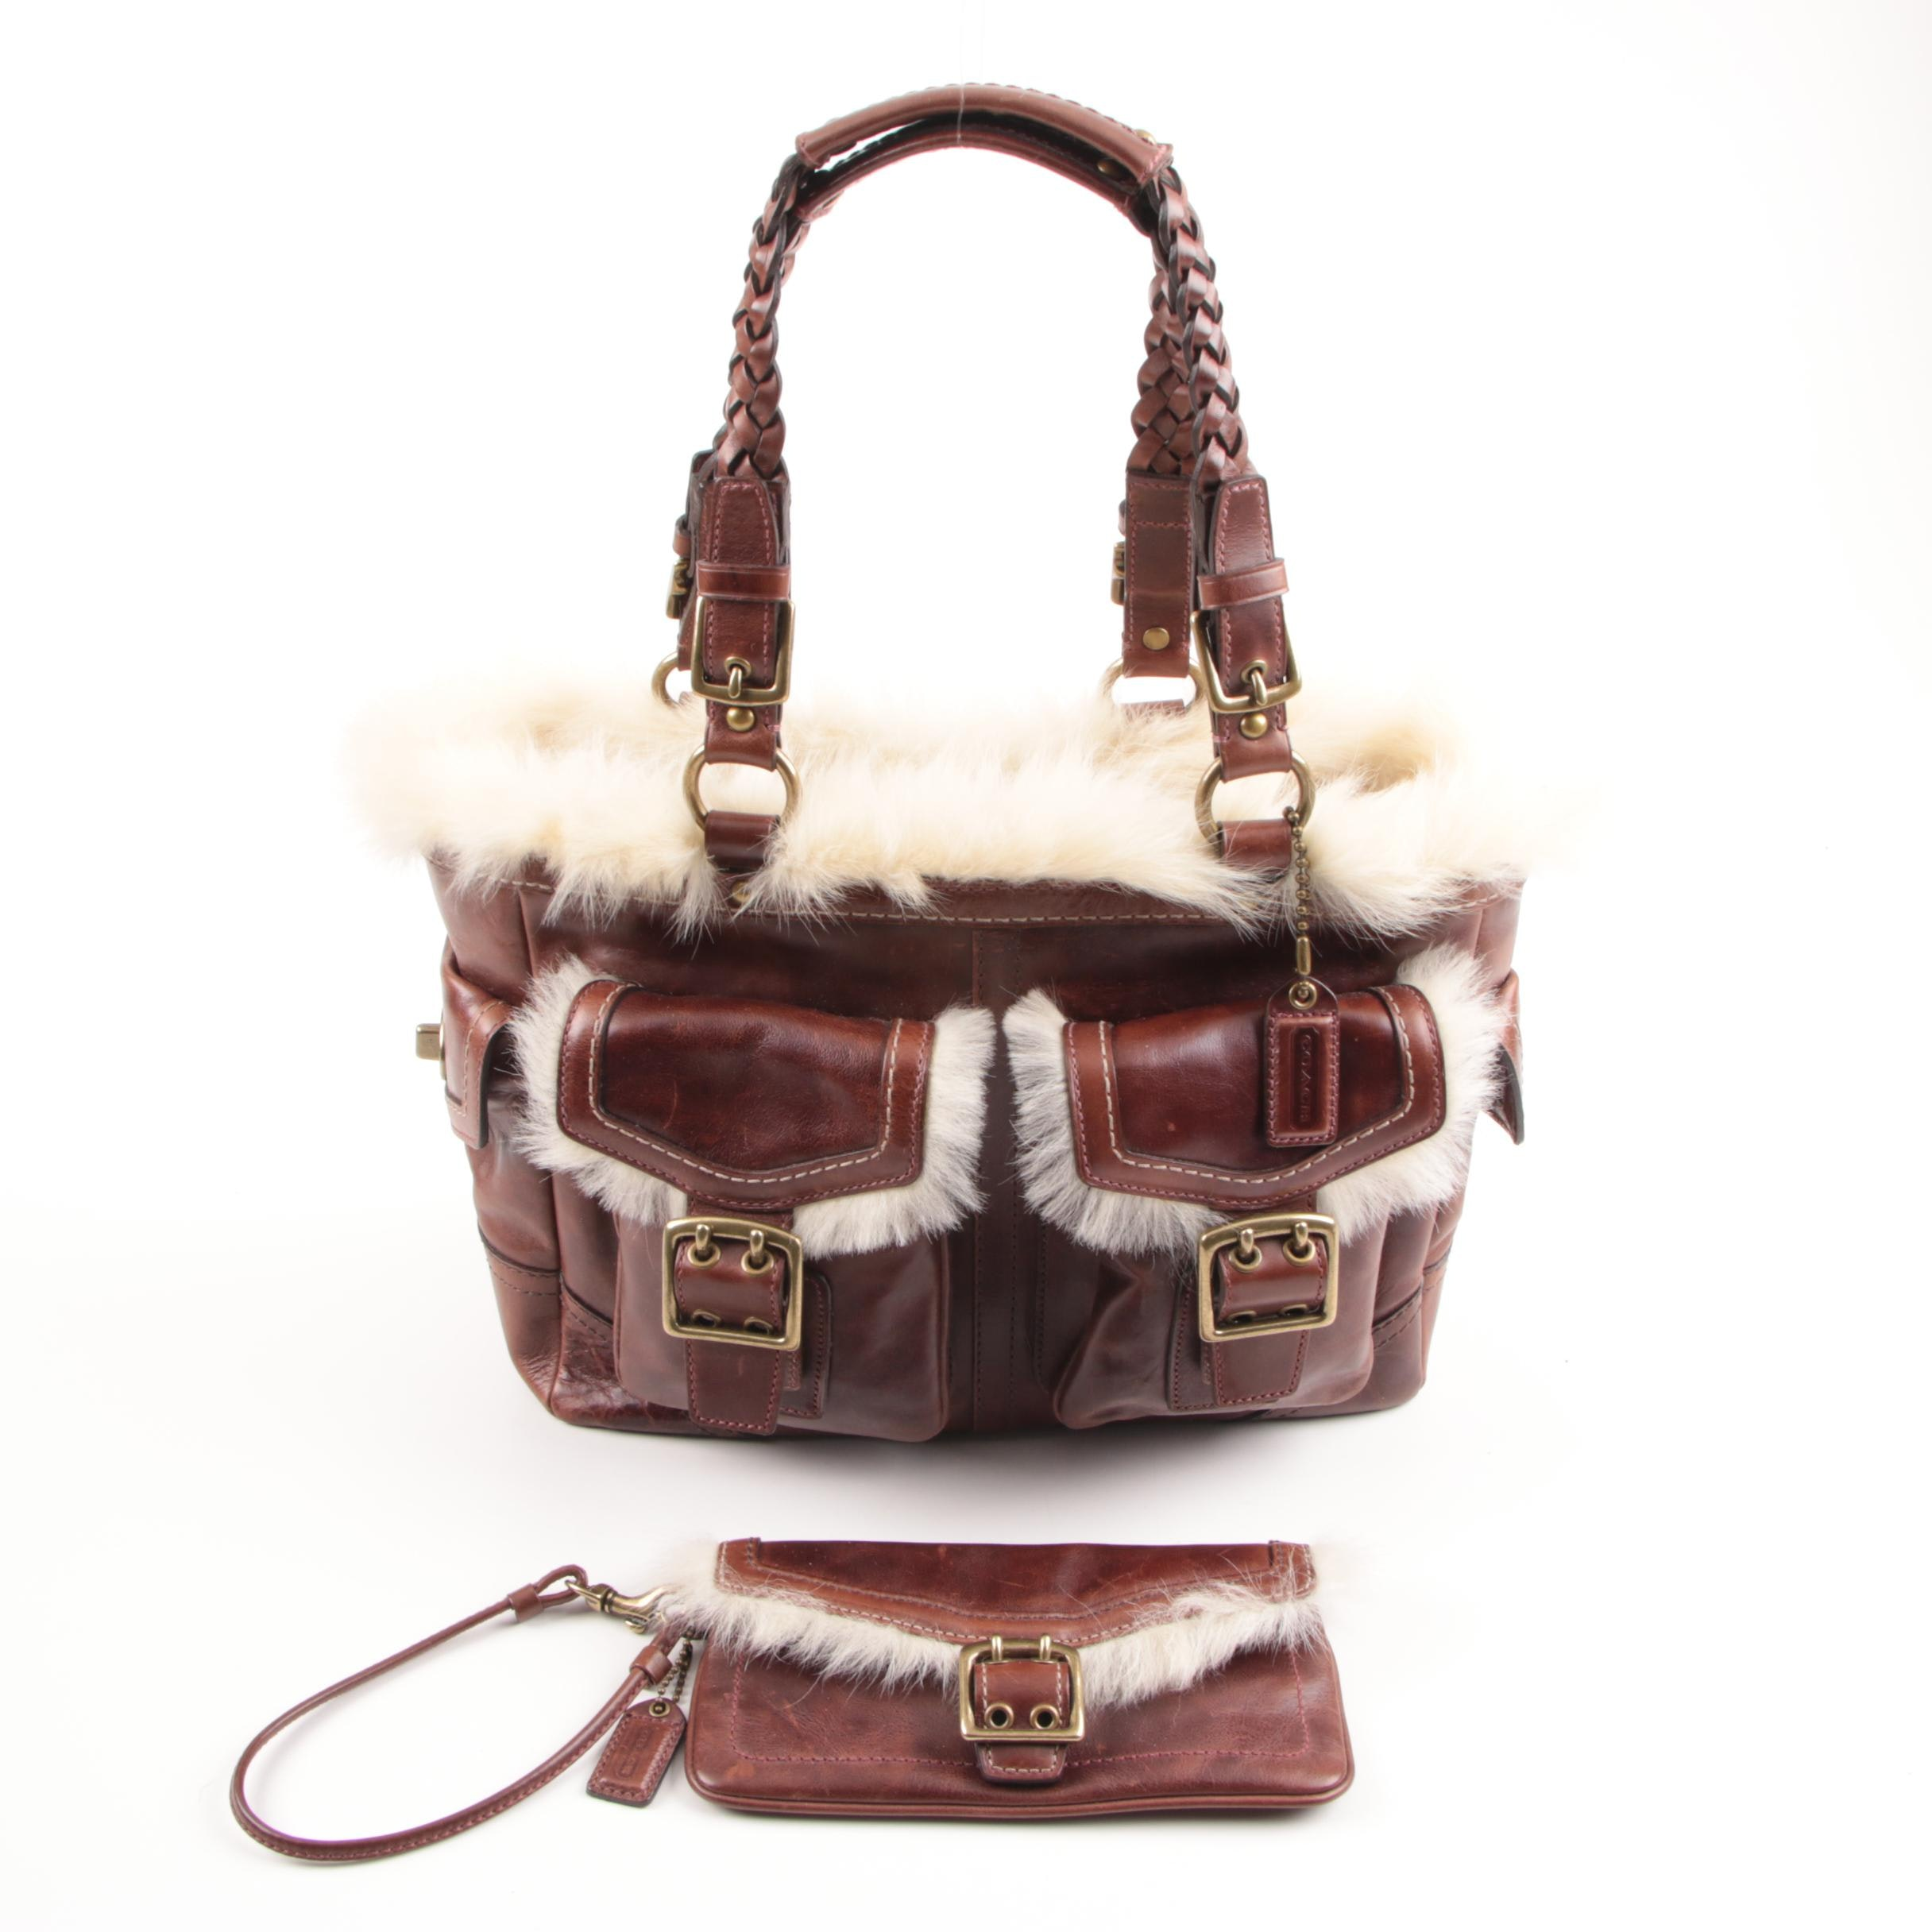 2005 Coach Brown Leather and Shearling Satchel with Matching Wristlet